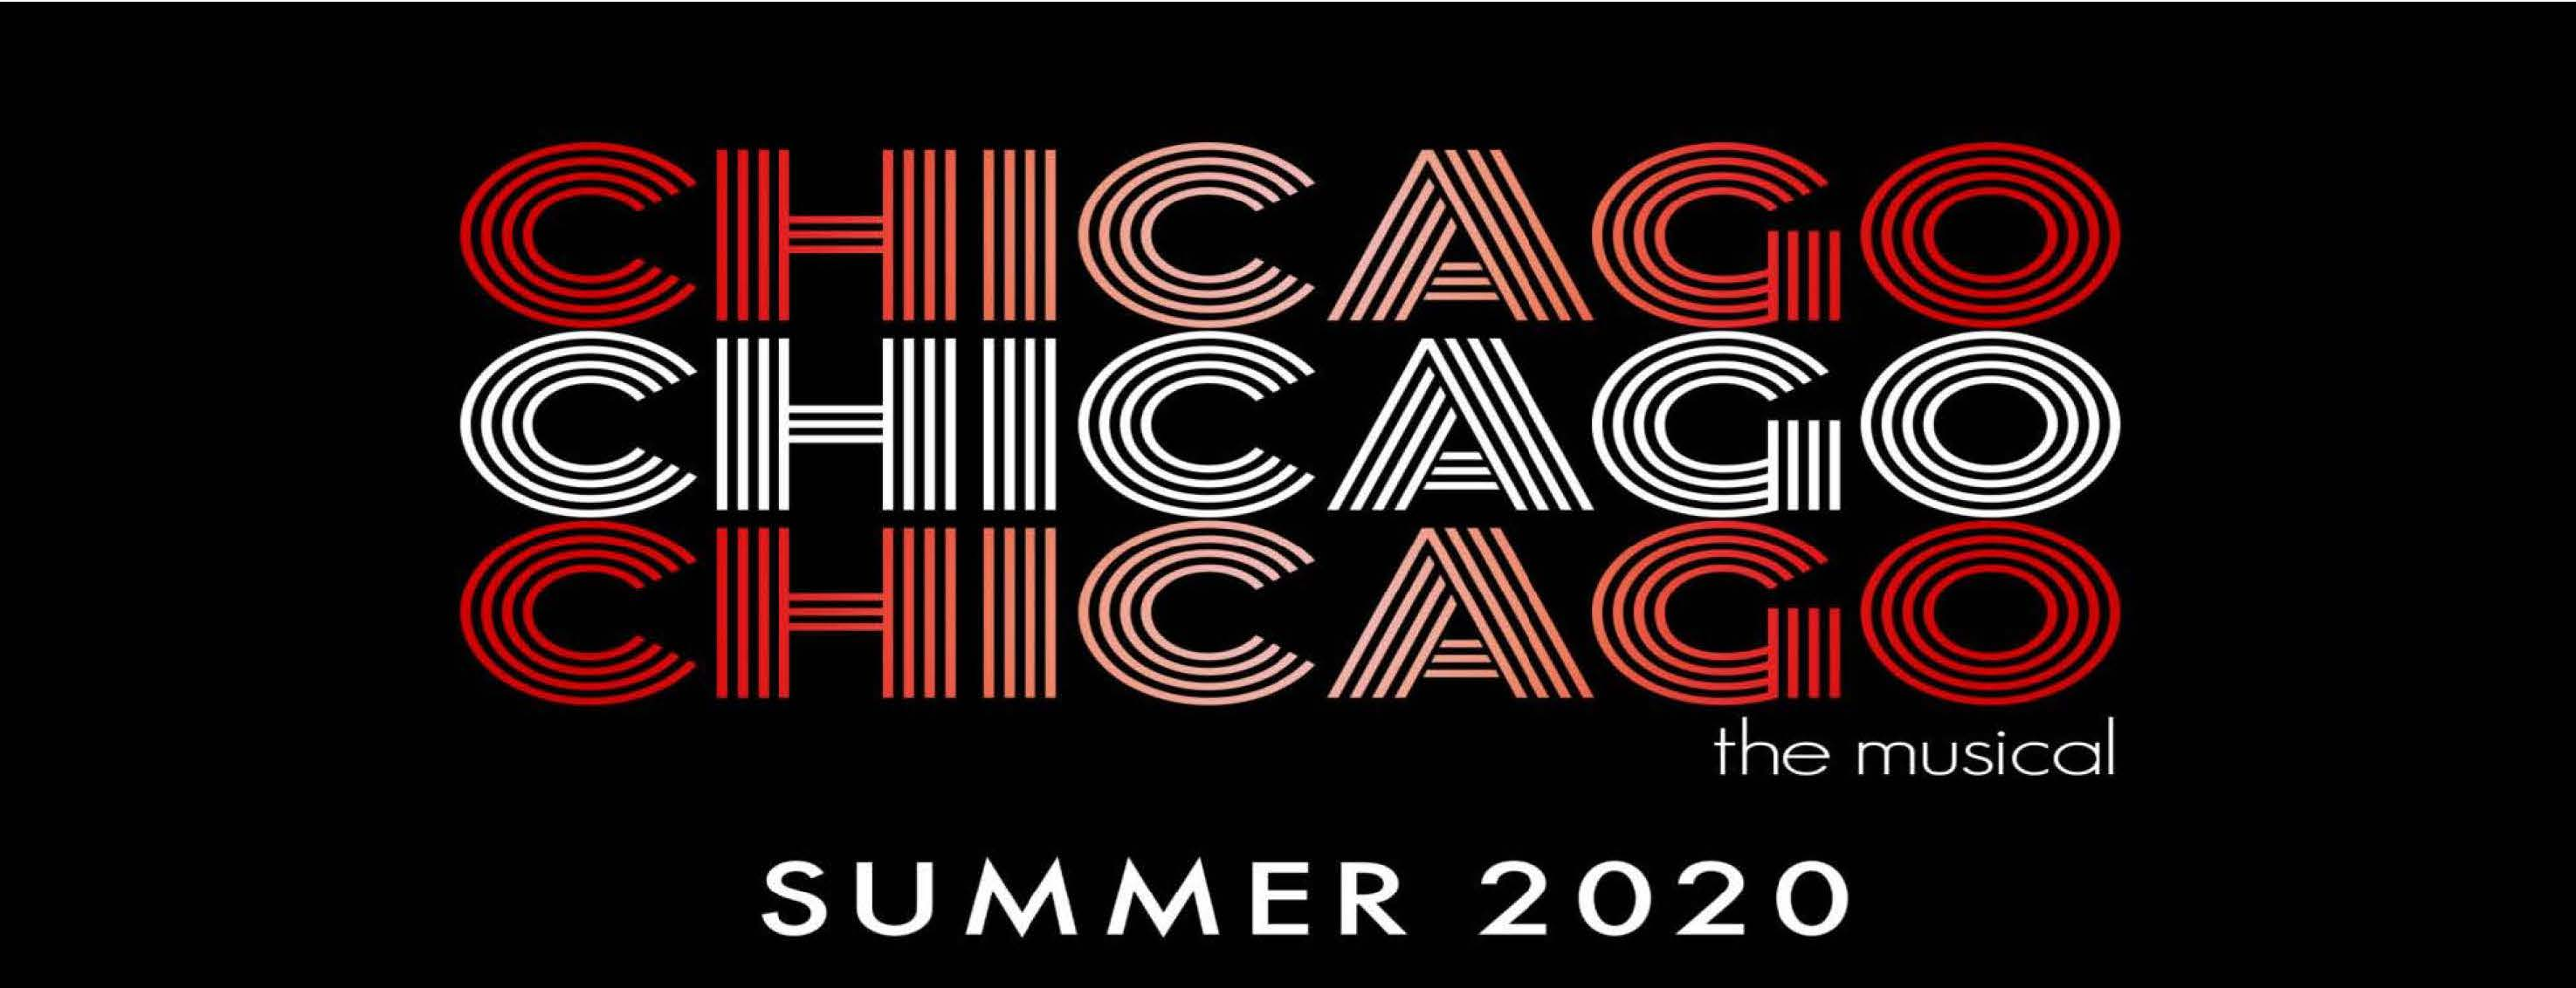 The 2020 Summer Season Passes